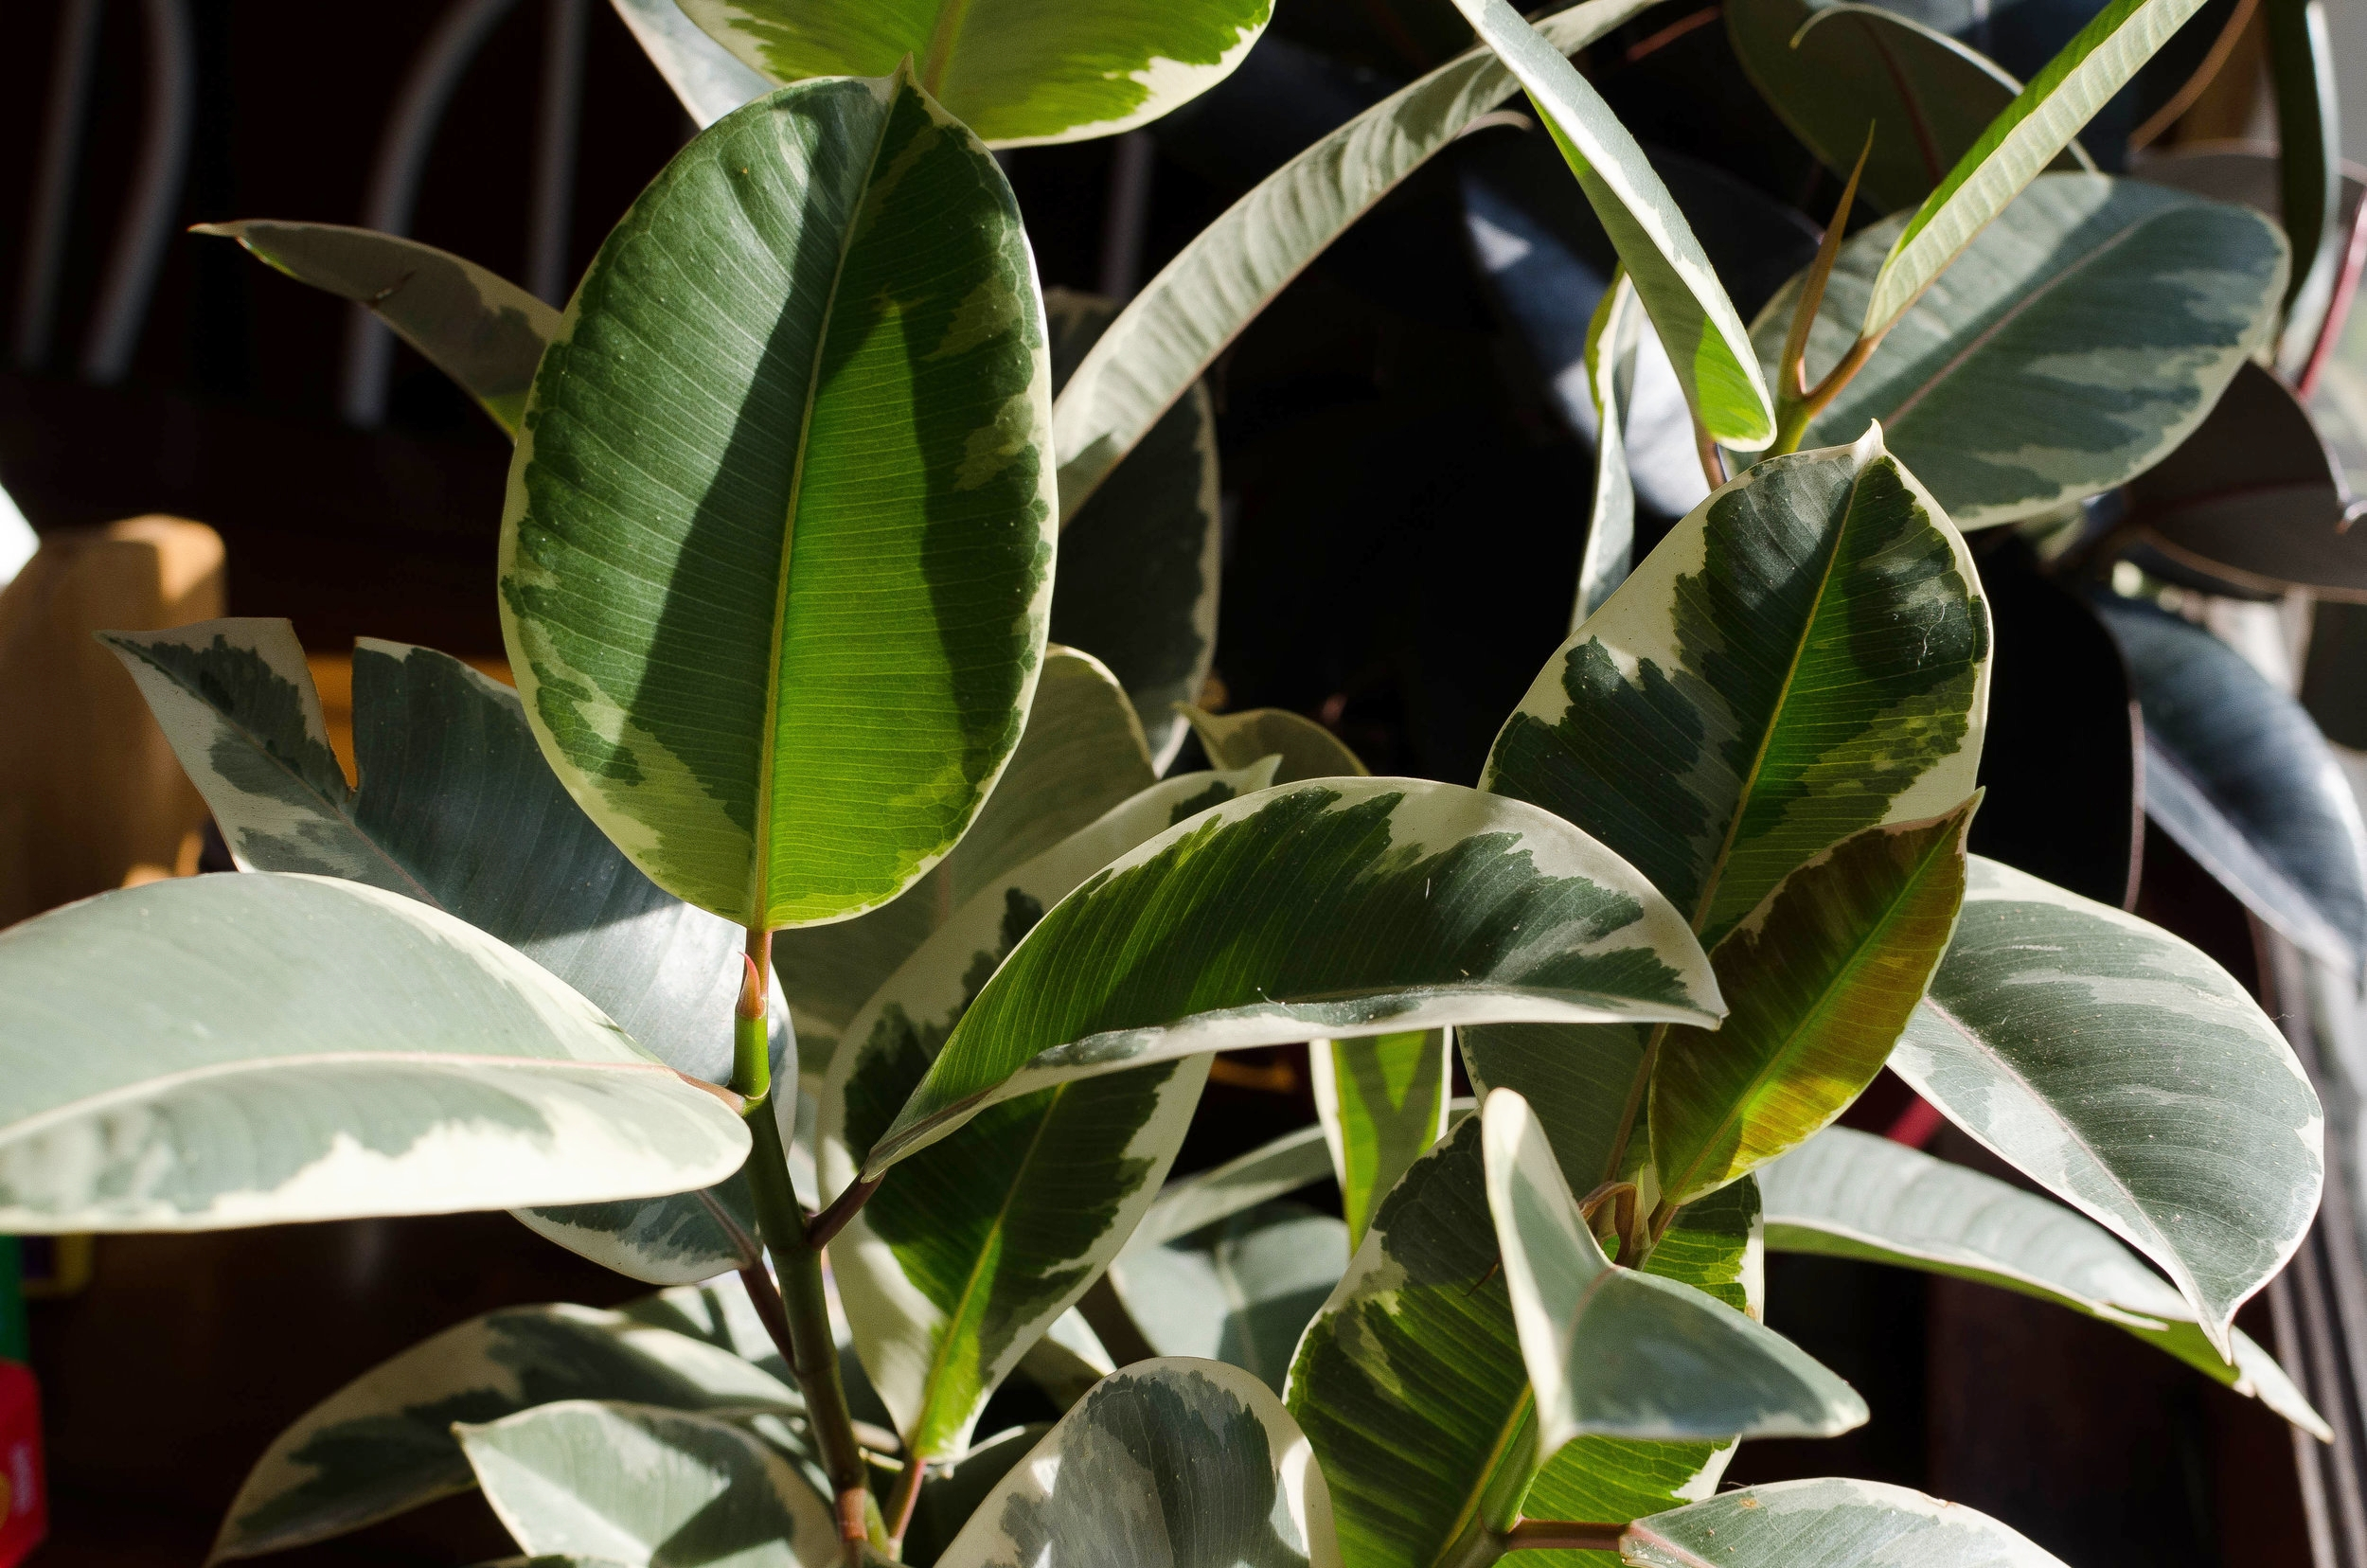 """Ficus elasitca variegata """" Tineke""""  basking in the glory of the western sun. This plant would also do well in a south-facing window covered by a sheer curtain."""